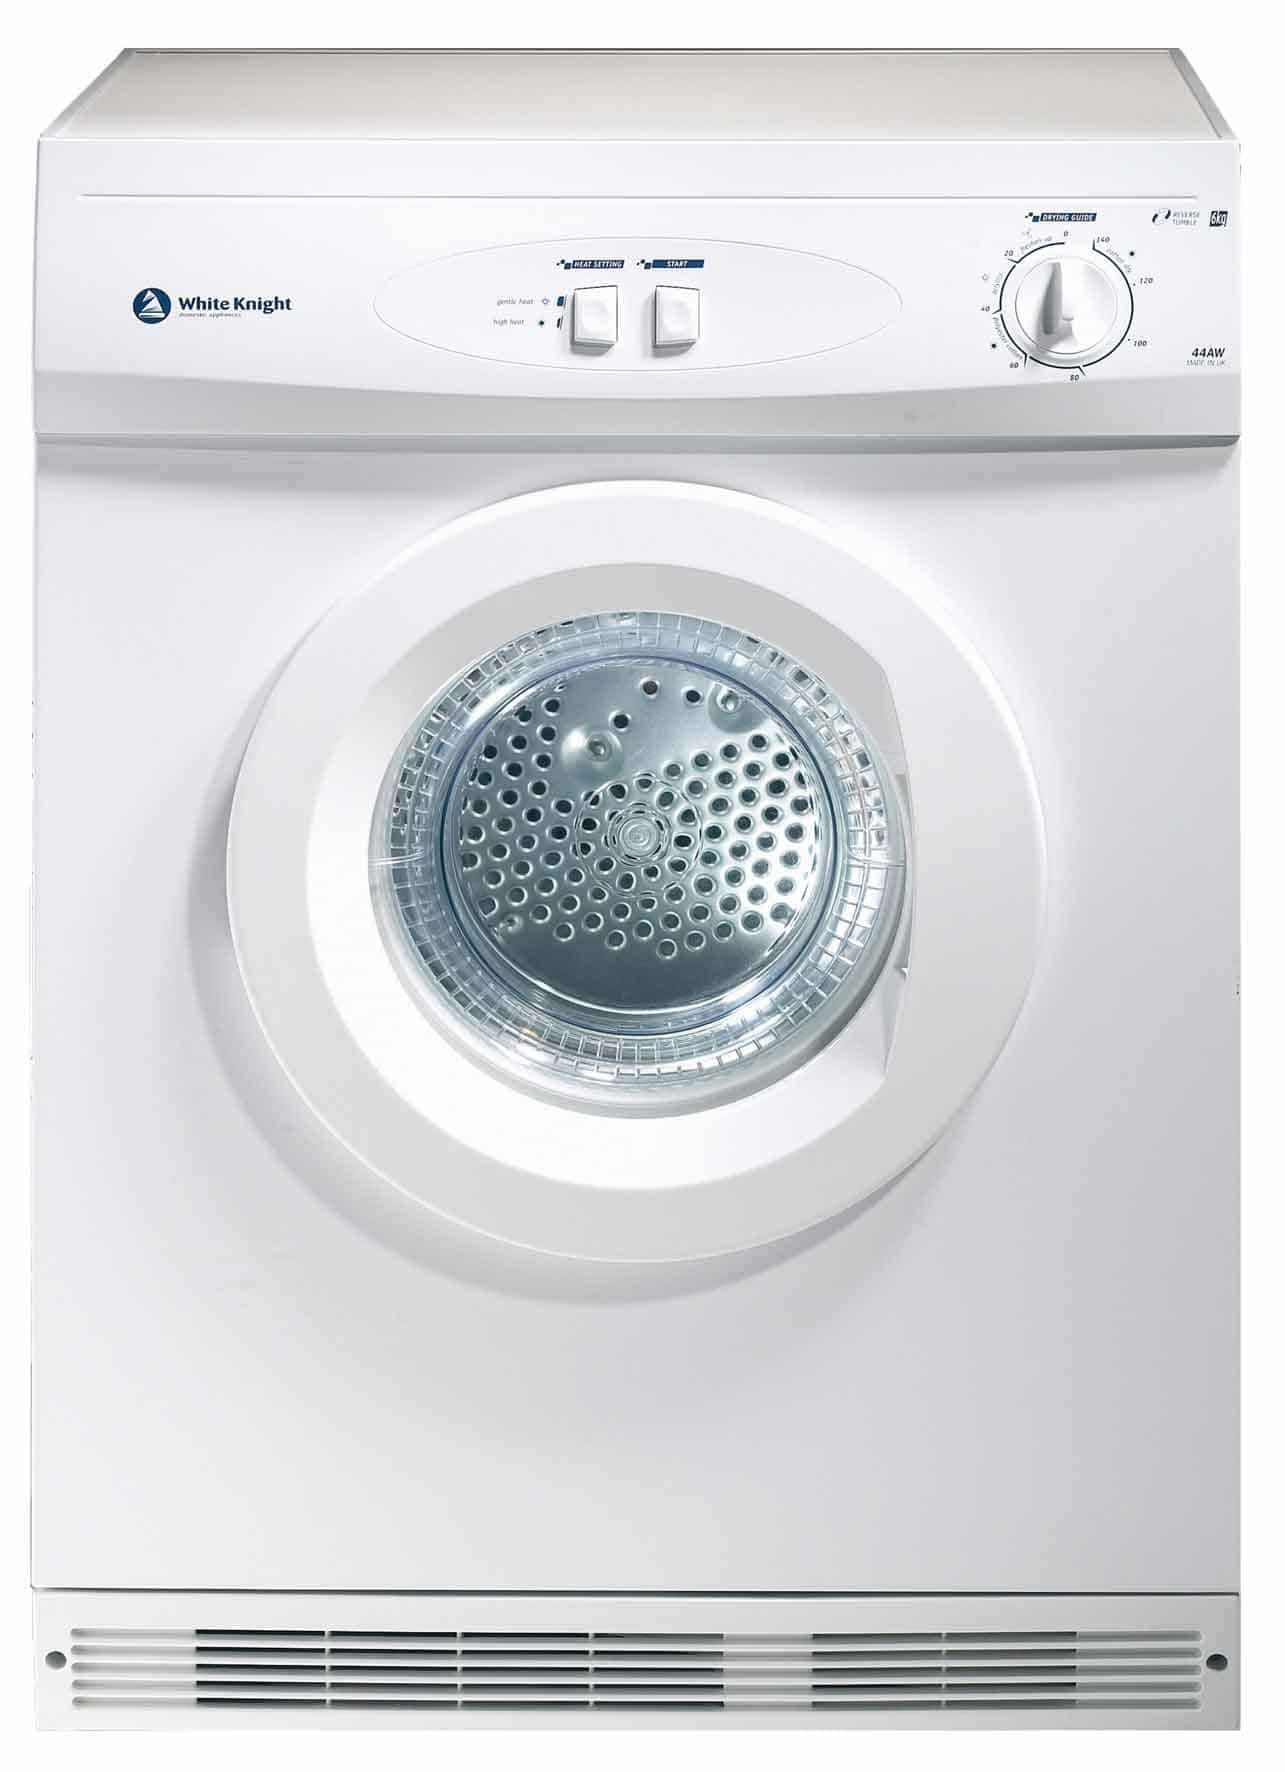 hight resolution of white knight 44aw wiring diagram white knight tumble dryer wiring diagram i will try and help